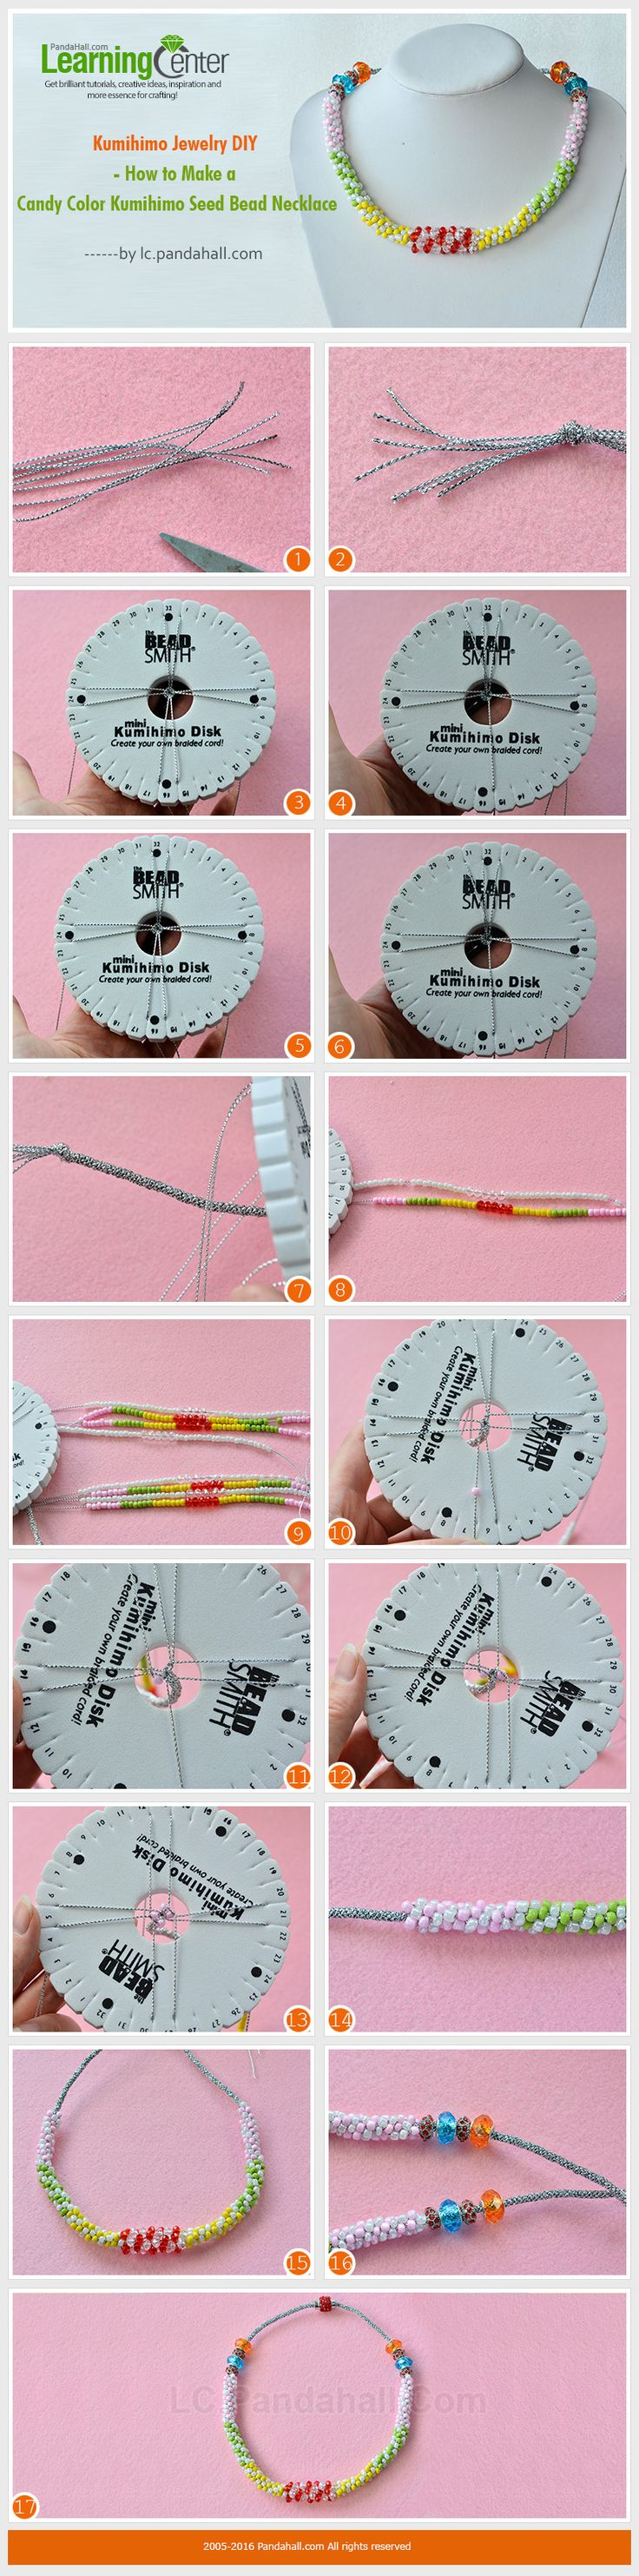 Create and craft coupons - Find This Pin And More On Jewelry Making Tutorials Tips 2